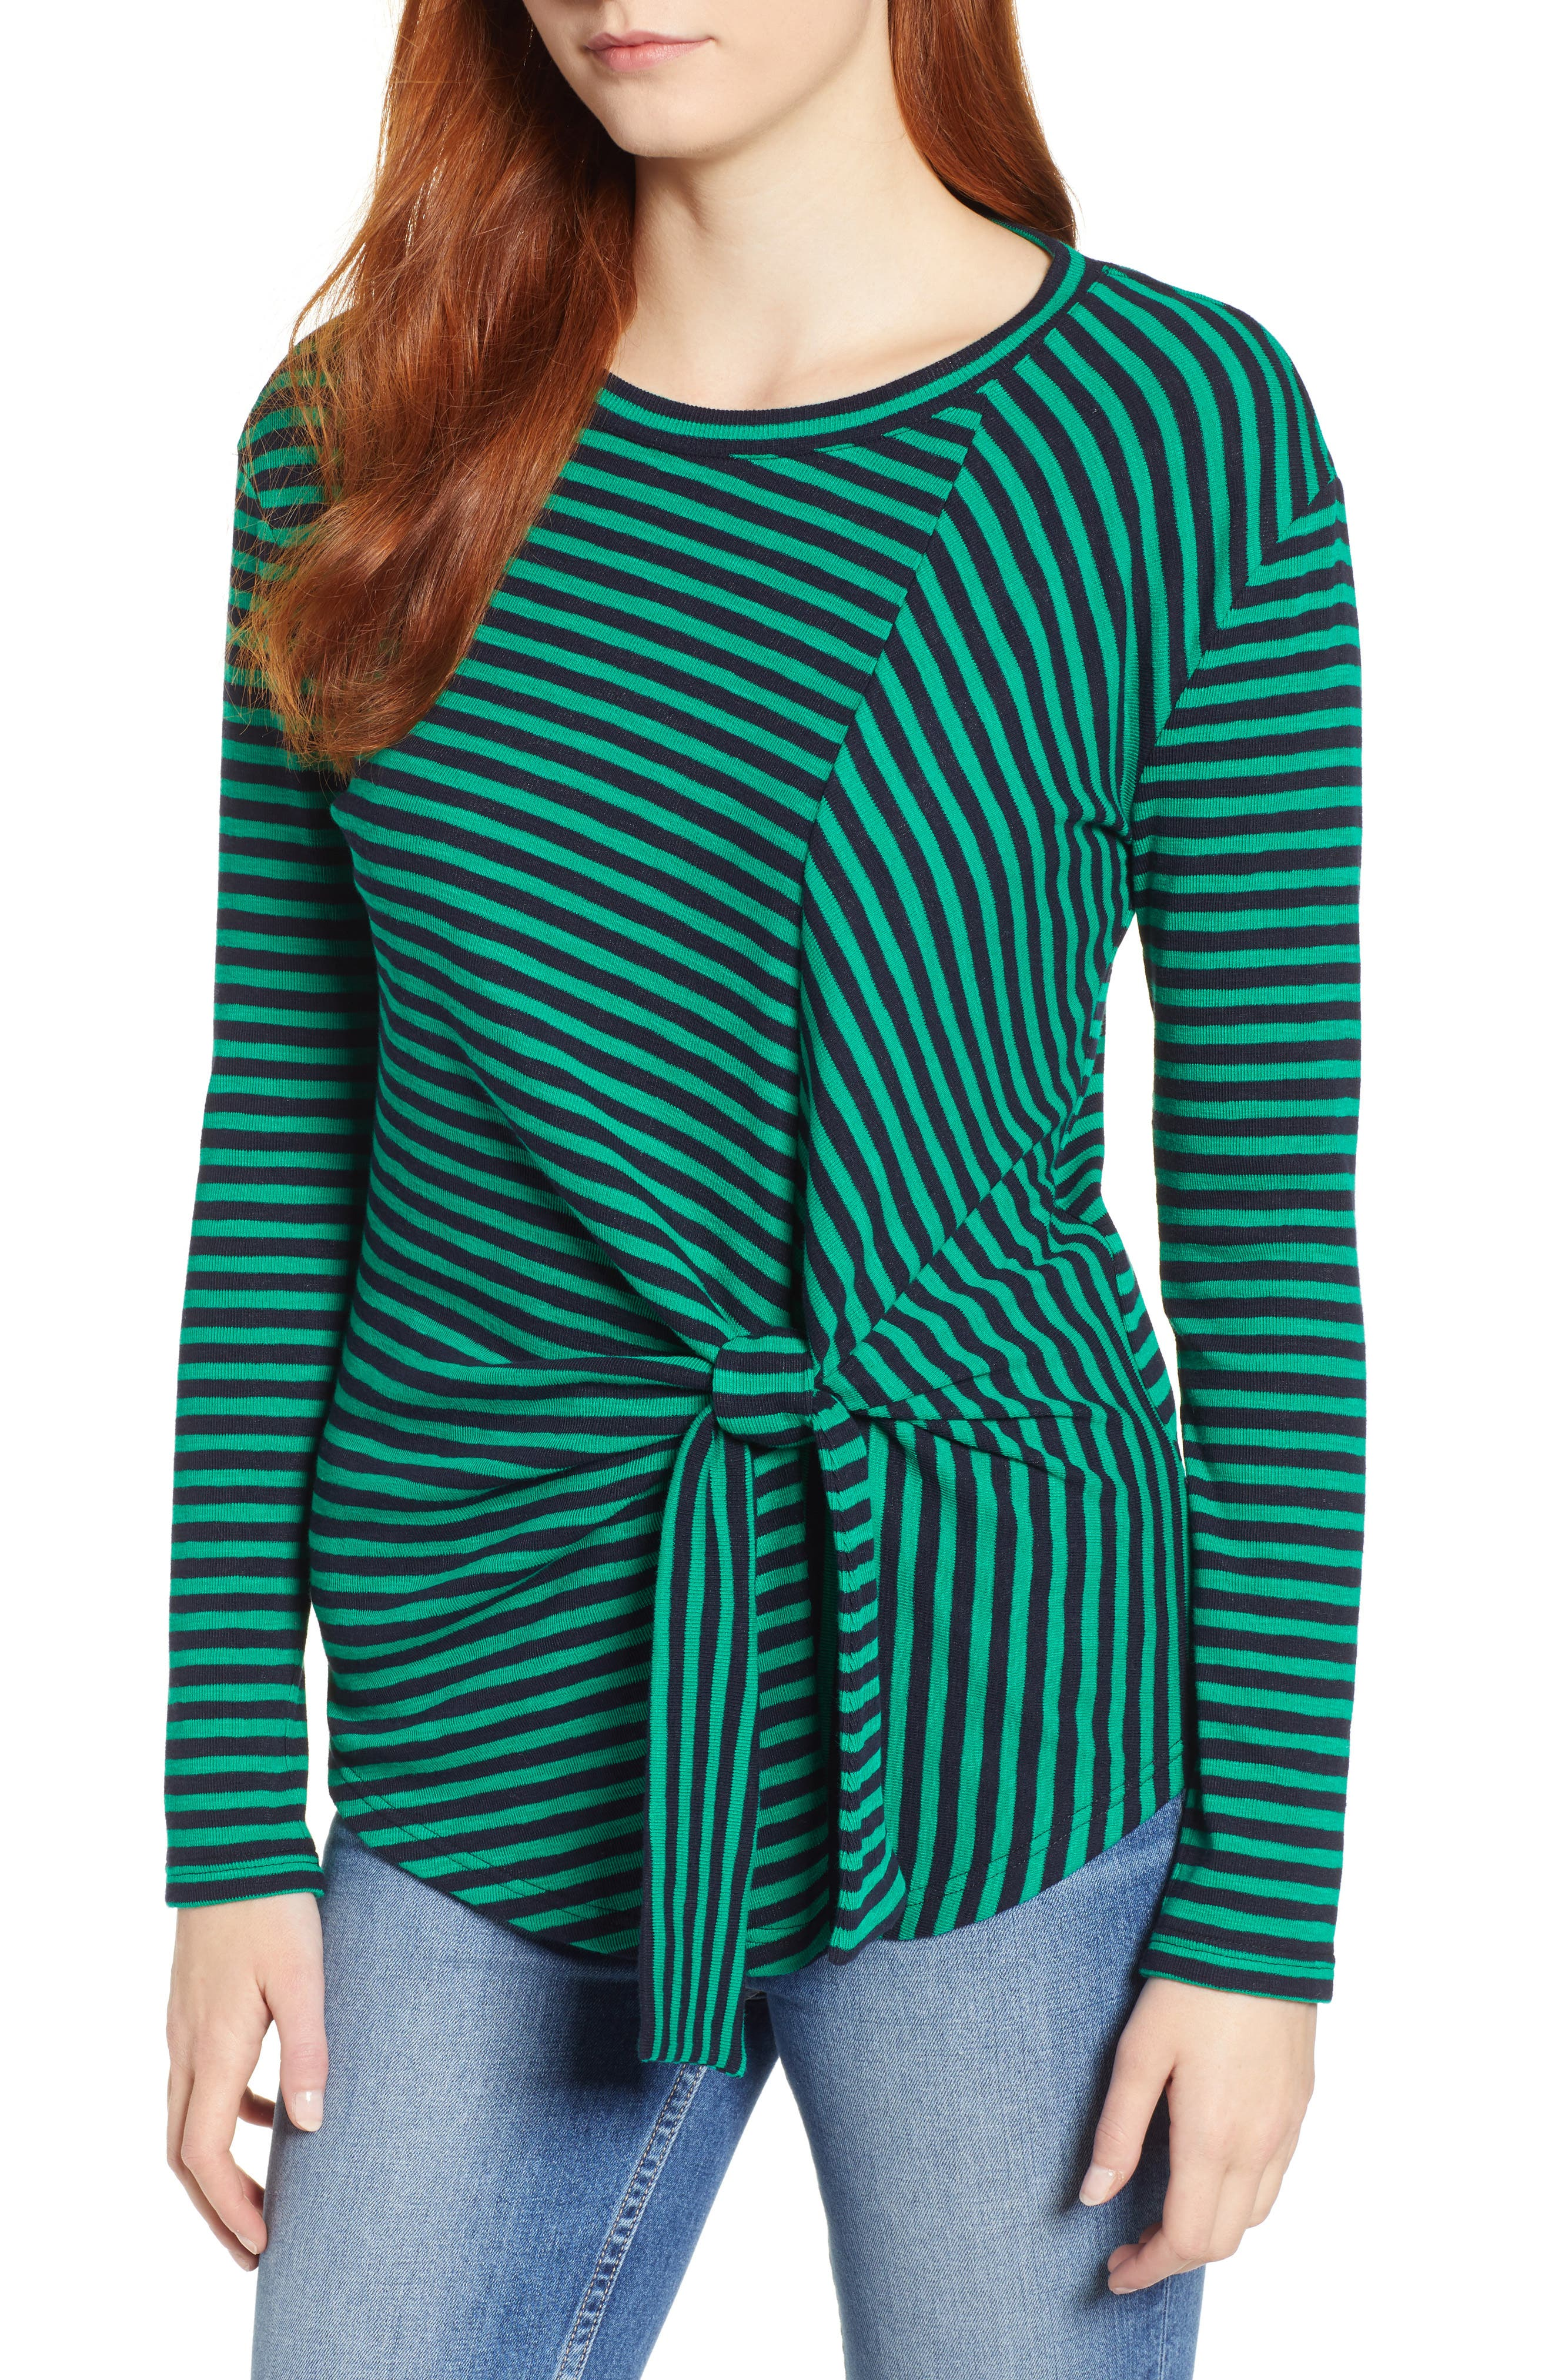 &.LAYERED Twist Front Stripe Stretch Cotton Tee, Main, color, NAVY/ GREEN